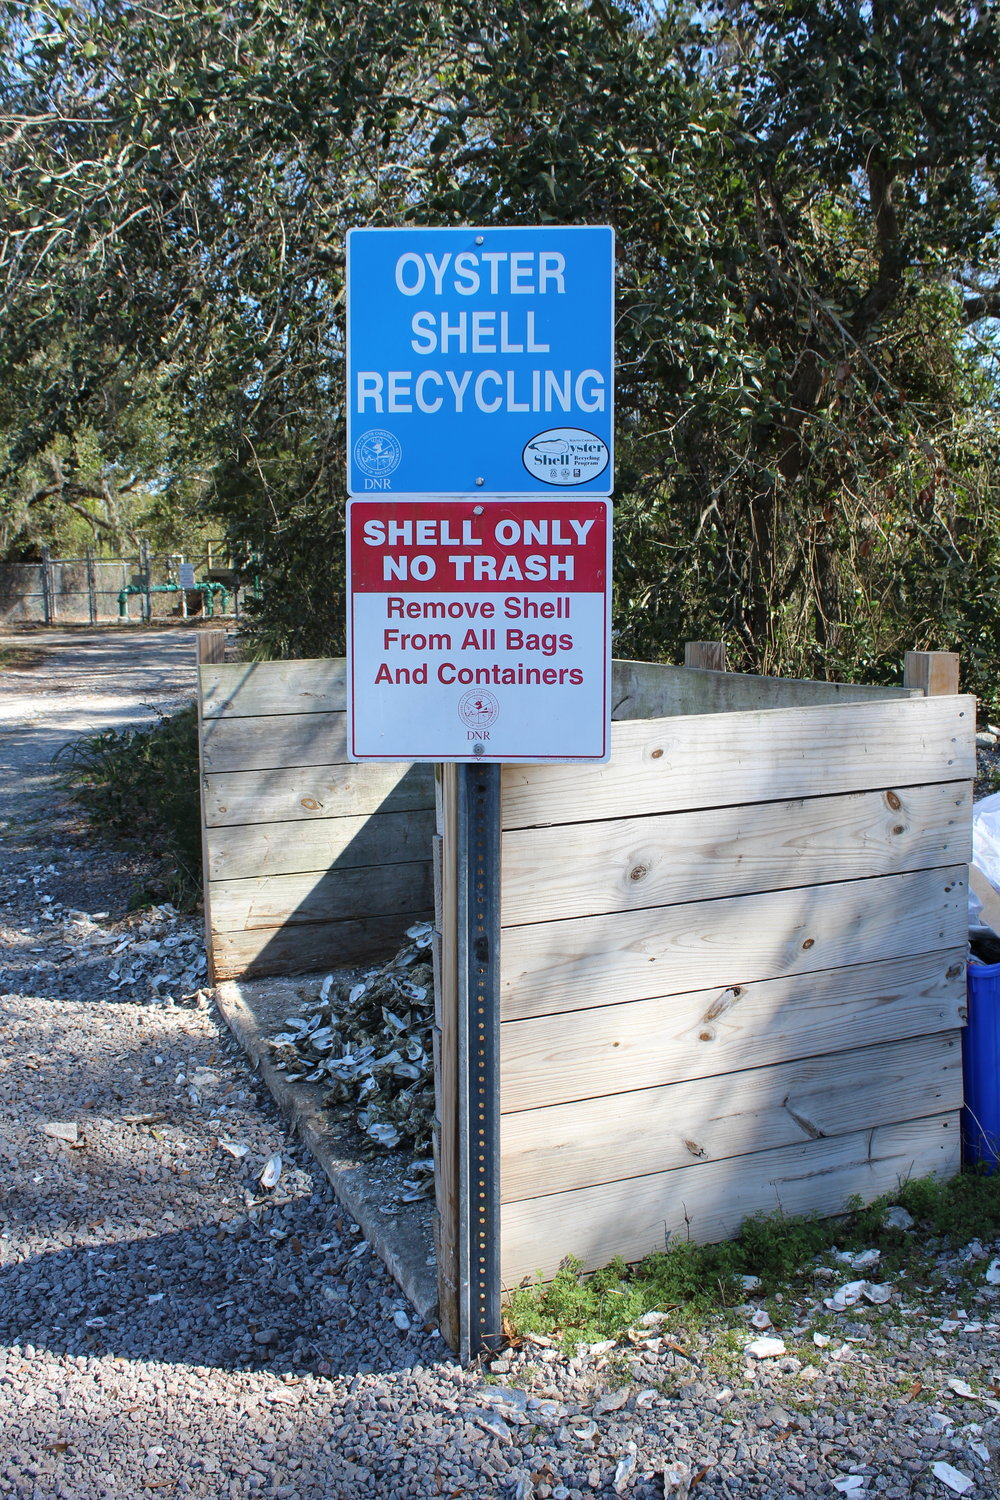 Oyster shell drop-off sites across the coast offer a convenient place to recycle your shells, so that SCDNR biologists can quarantine them before returning them to the environment to rebuild oyster reefs. (Photo: E. Weeks/SCDNR)